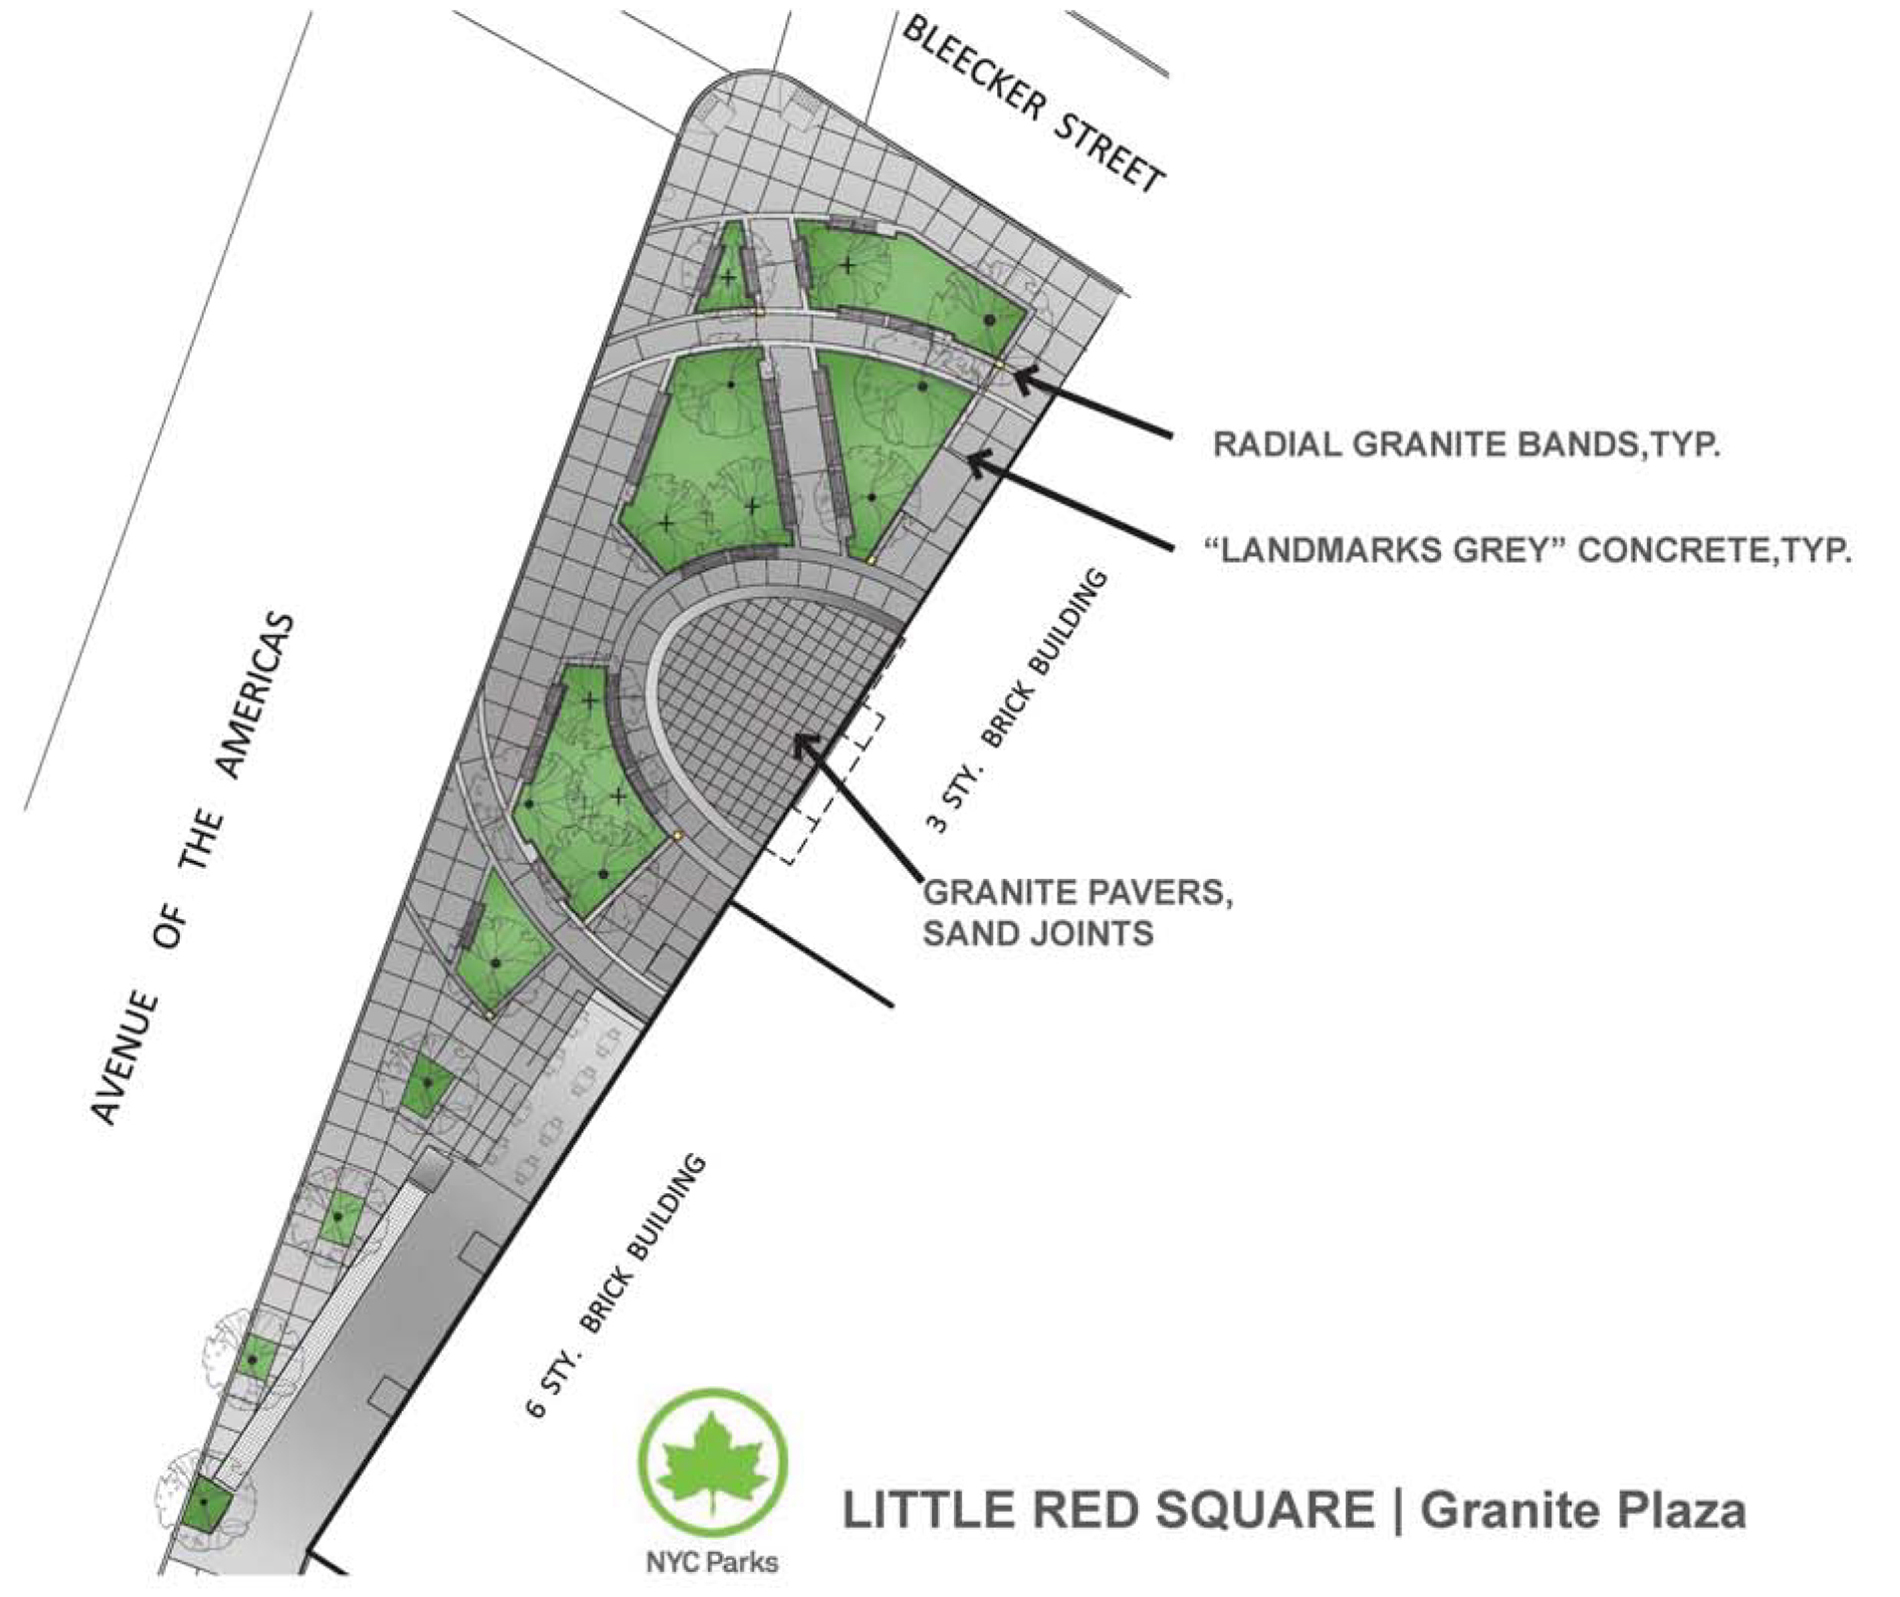 Little Red Square Reconstruction Nyc Parks